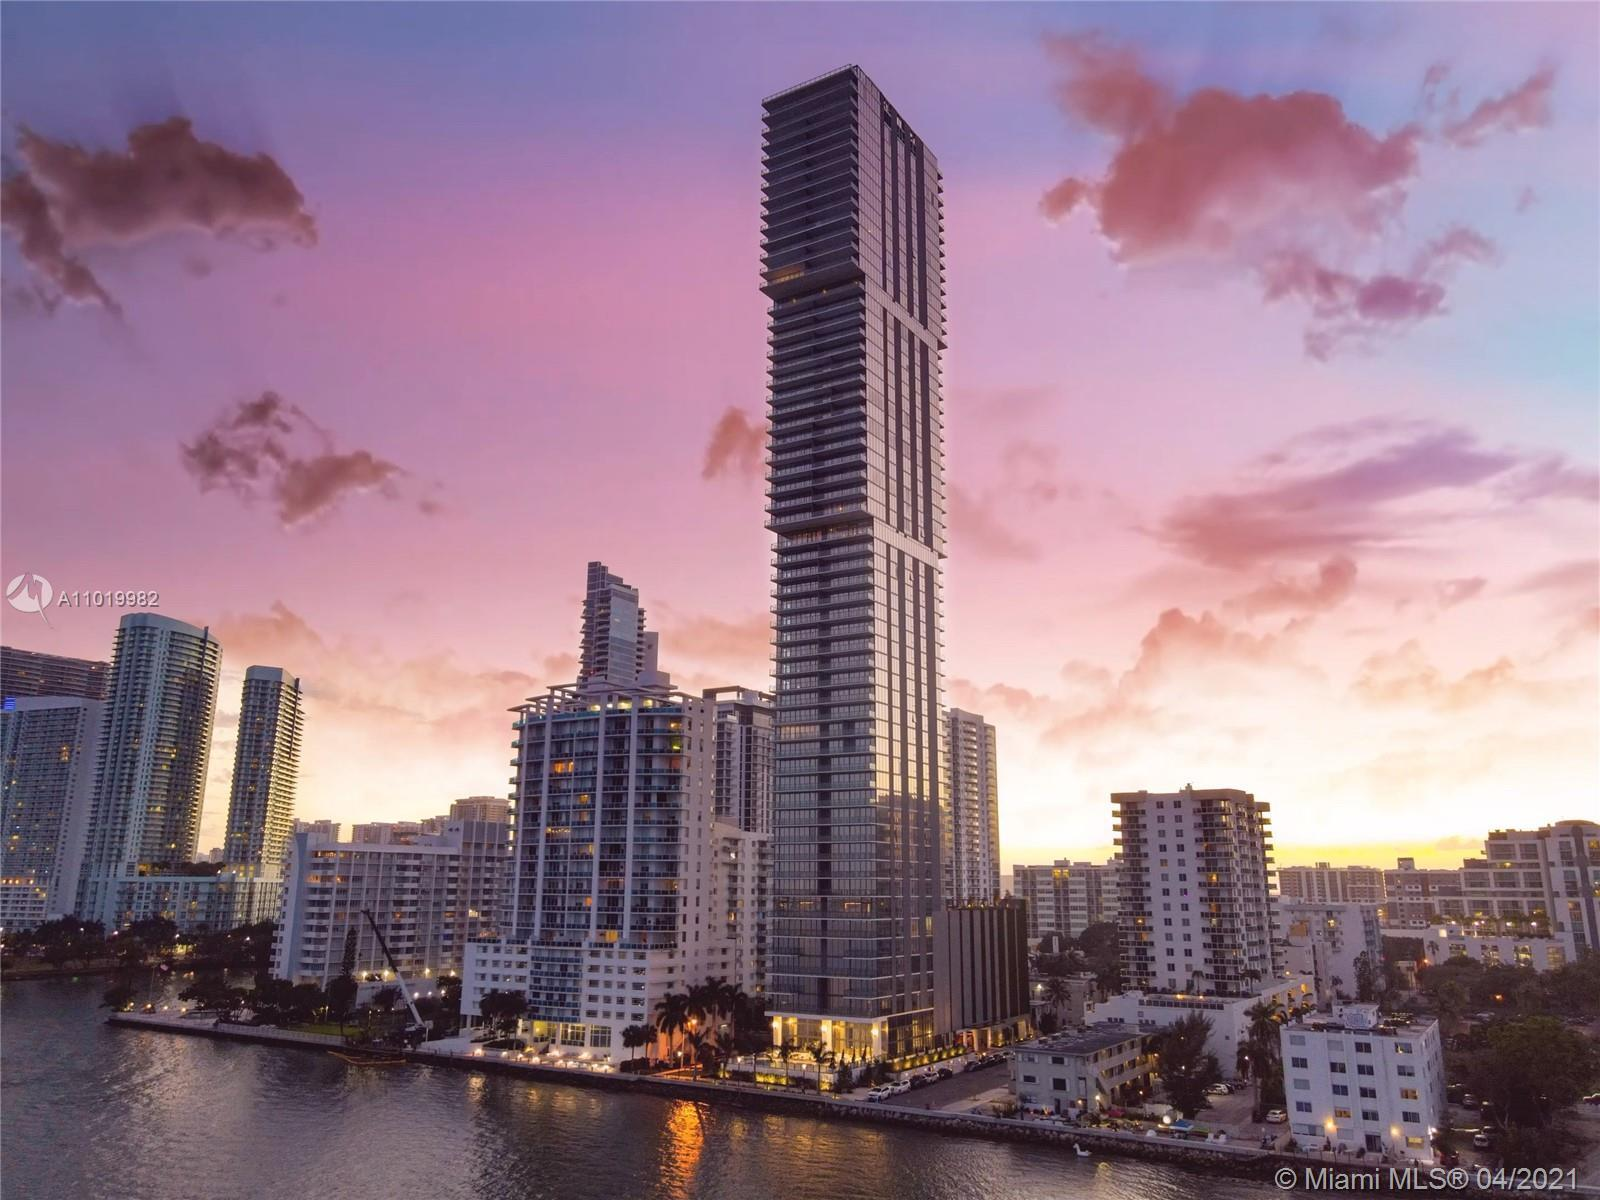 Stunning 3B, 3.5b units at Elysee, the first luxury boutique building in Edgewater. Oversized living